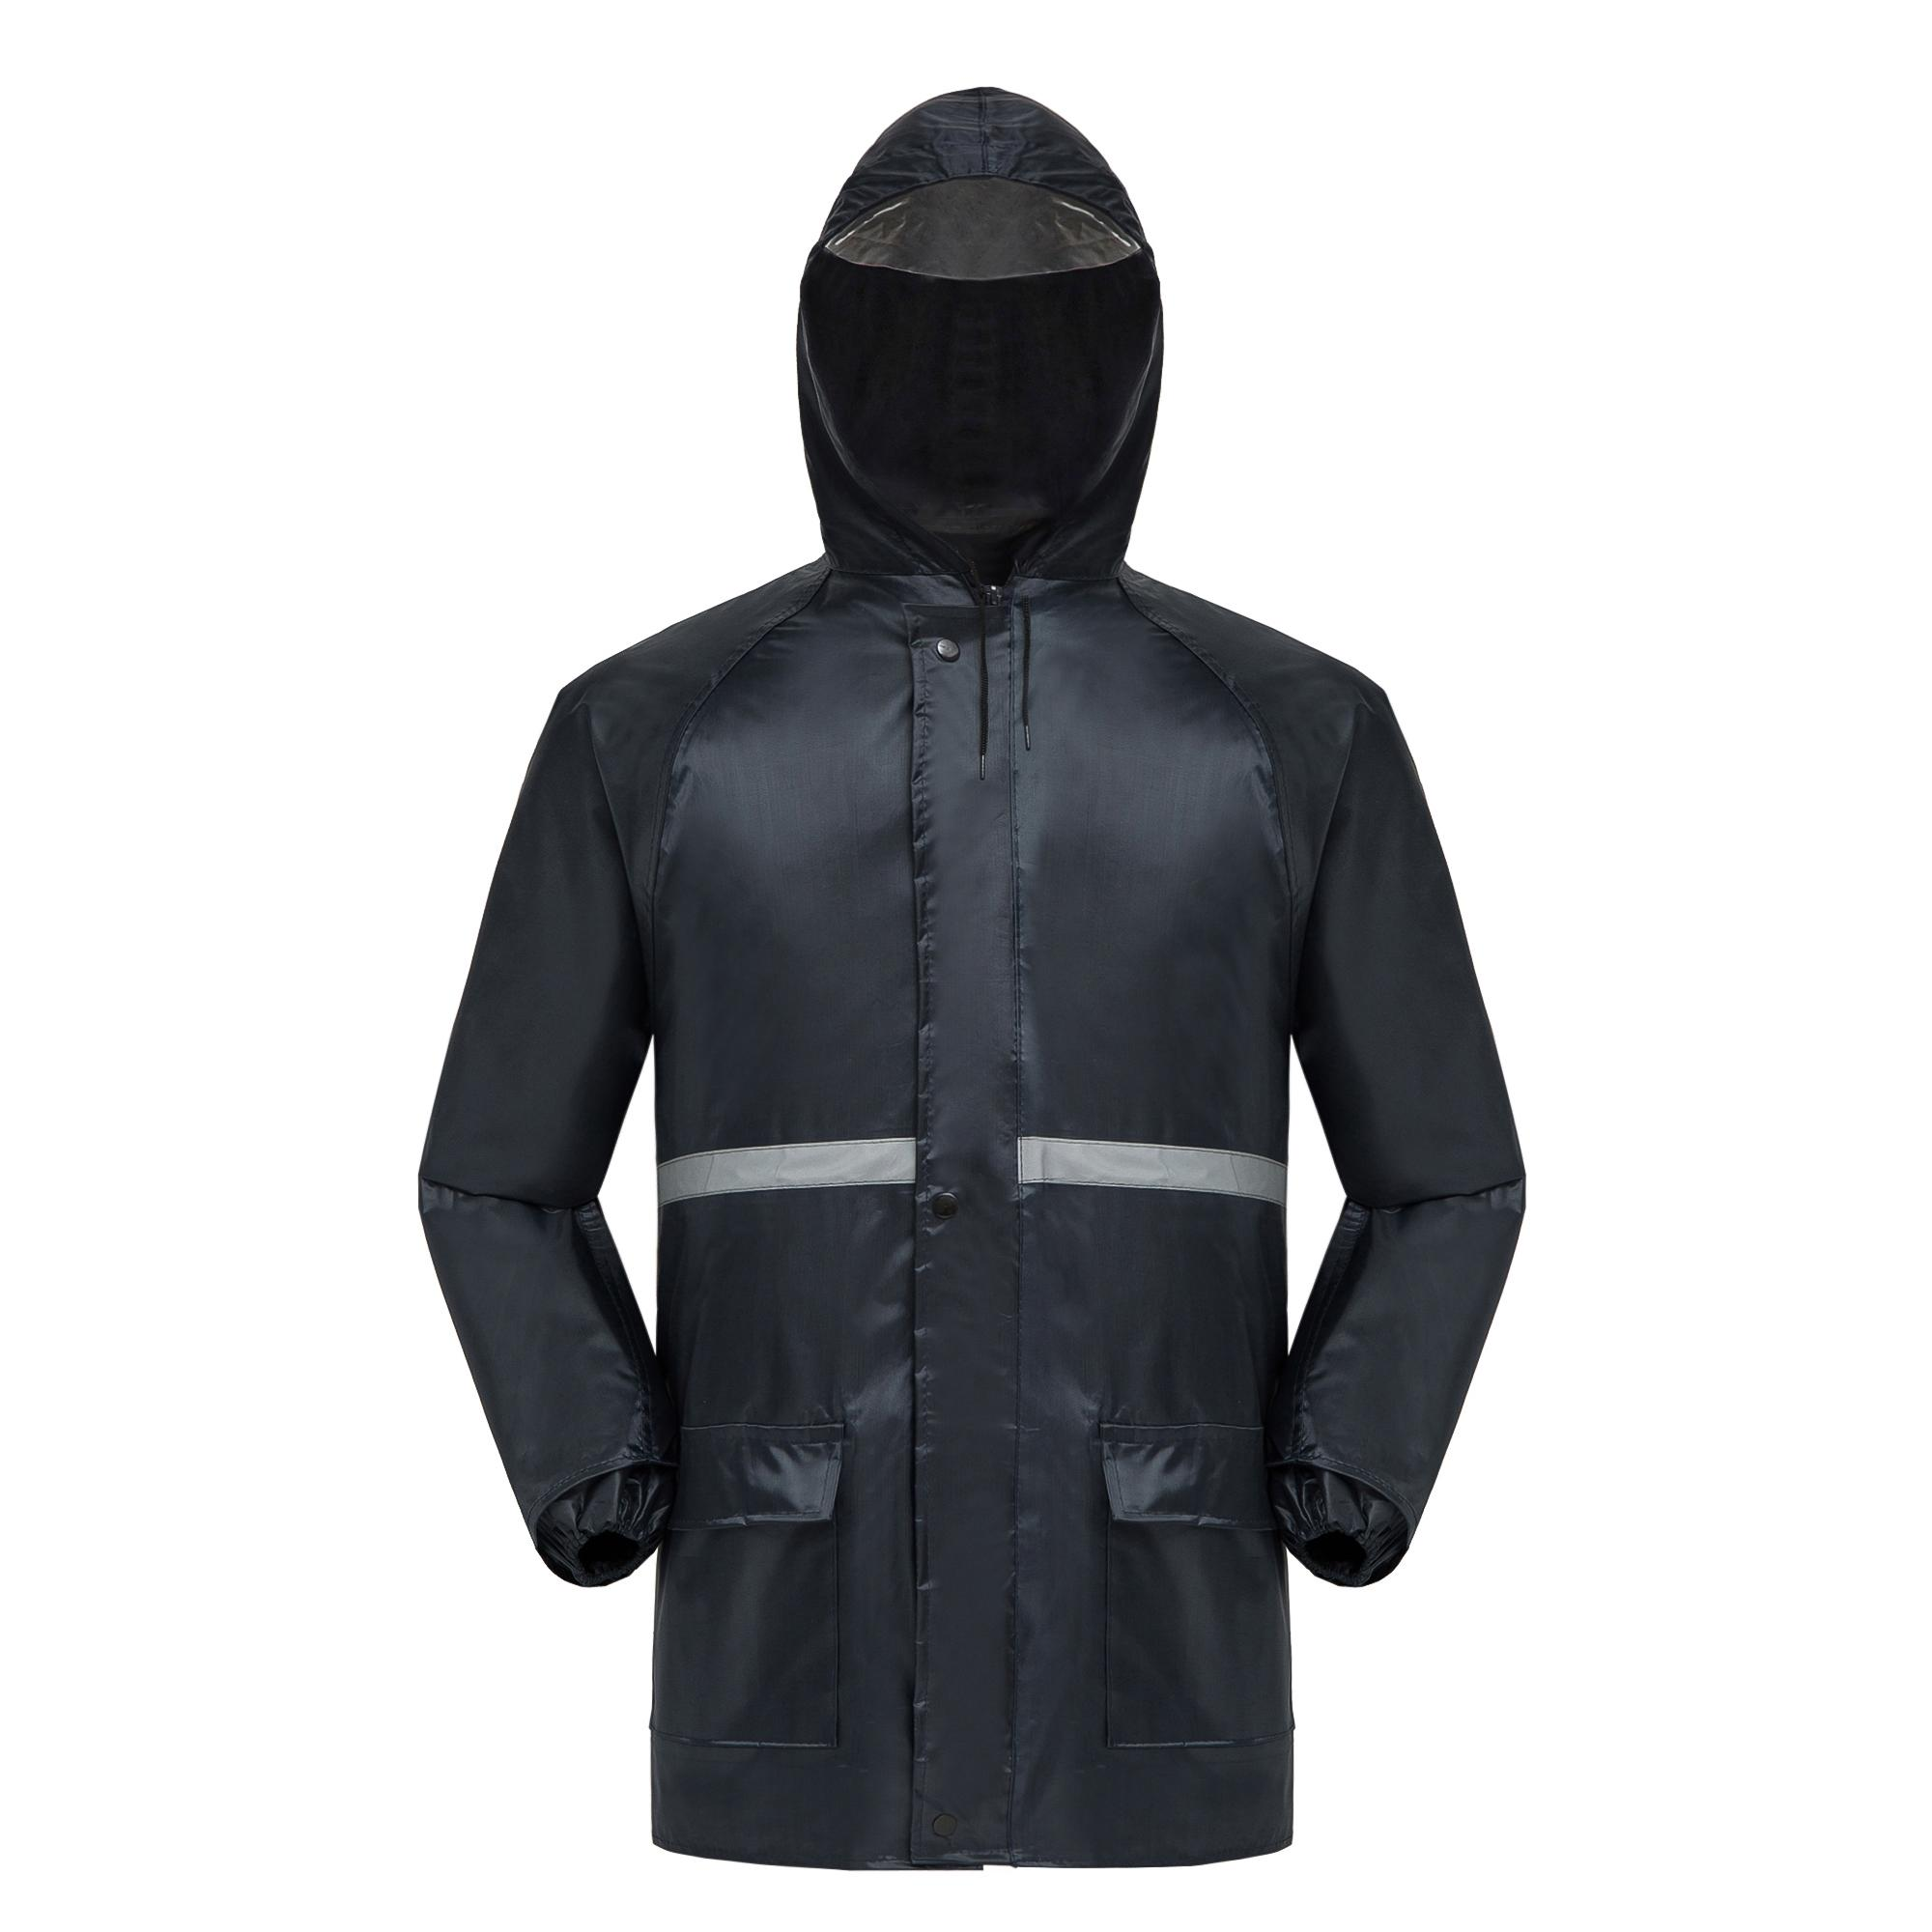 dba017394 Jackets for Men for sale - Mens Coat Jackets Online Deals & Prices ...